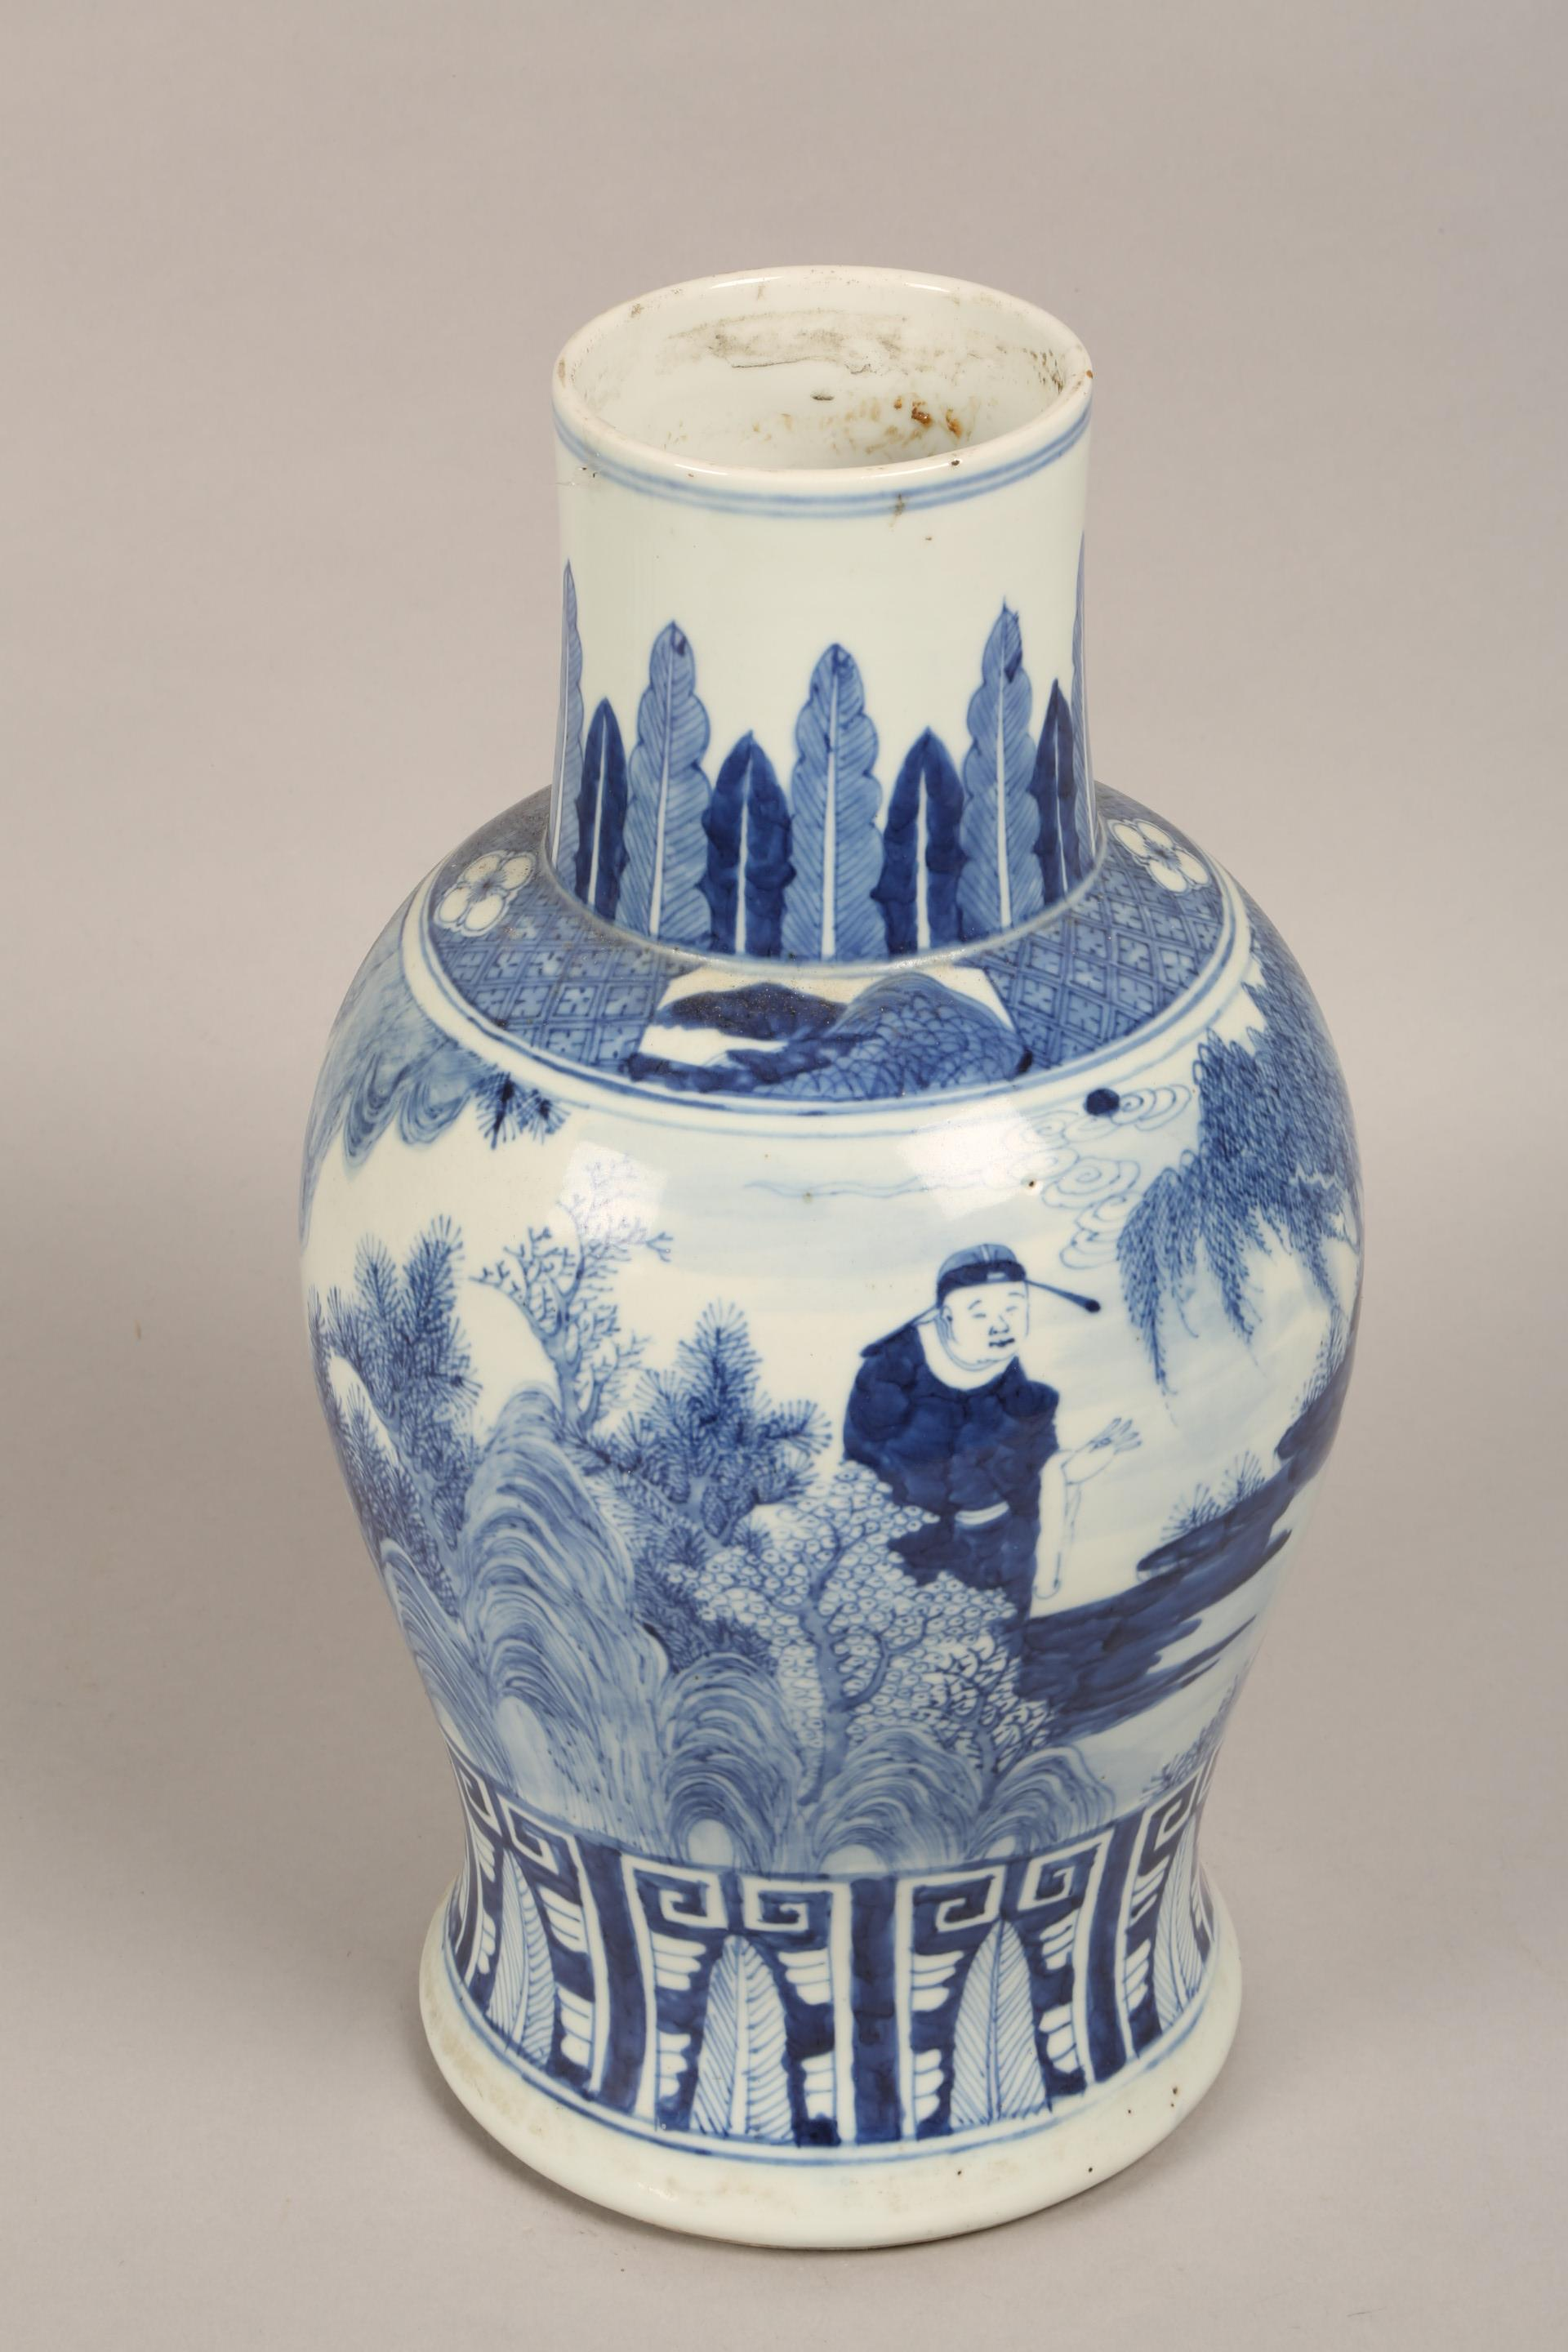 19th century Chinese blue and white vase of baluster form, decorated with figures in a landscape ( - Image 6 of 6